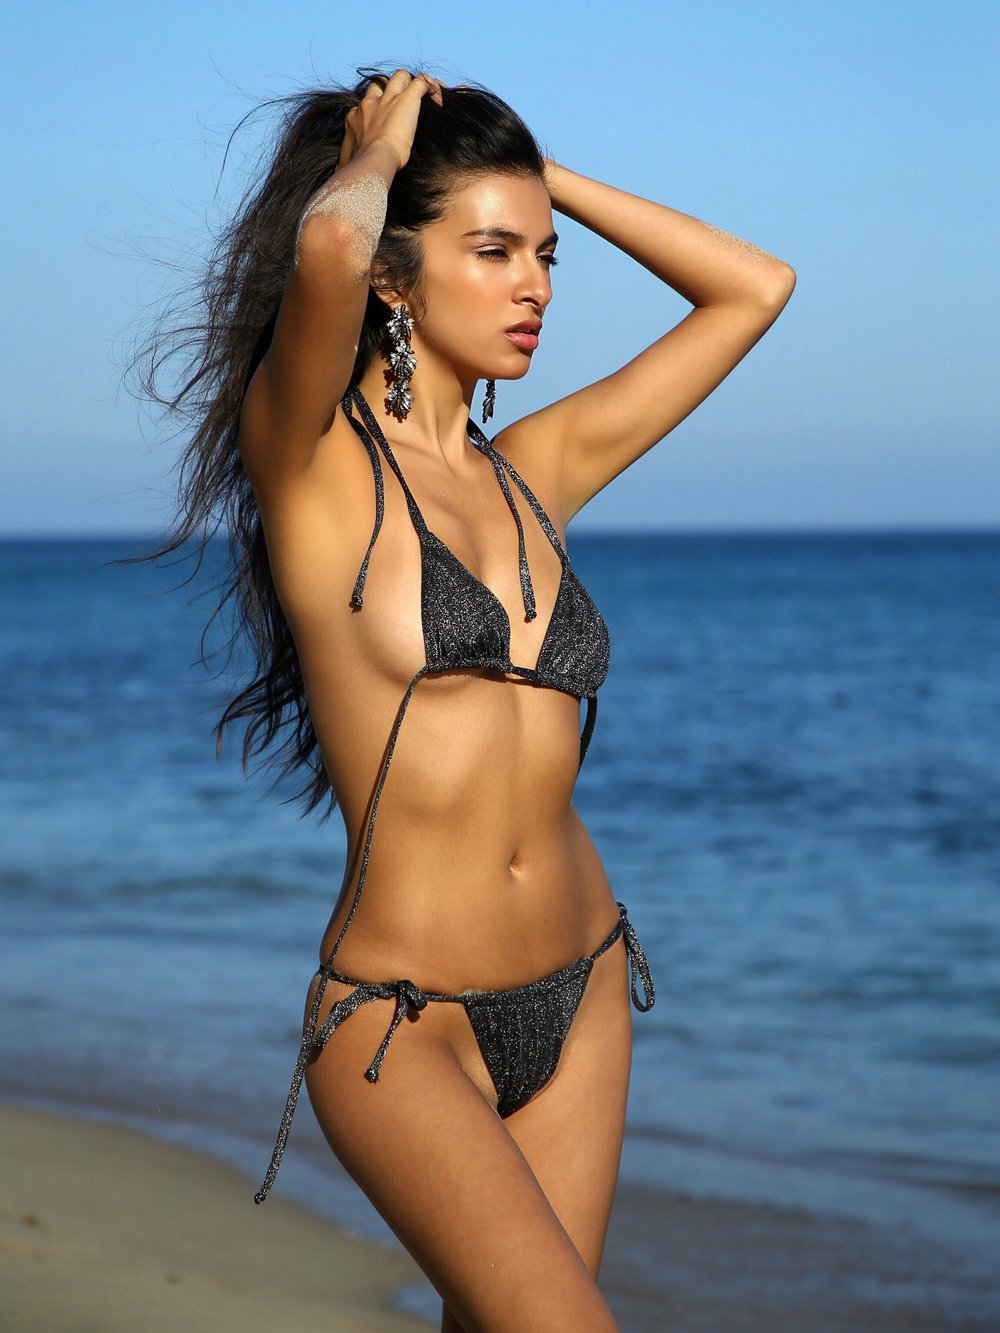 Kasos Metallic Brazilian Bikini - Black Silver/Gunmetal Silver Metallic Brazilian BikiniExclusive FabricComposition: 62% PA 29% PM 9% EADark Grey Lining: 75% PA 25% EASize Small to Medium bustSize Small bottom